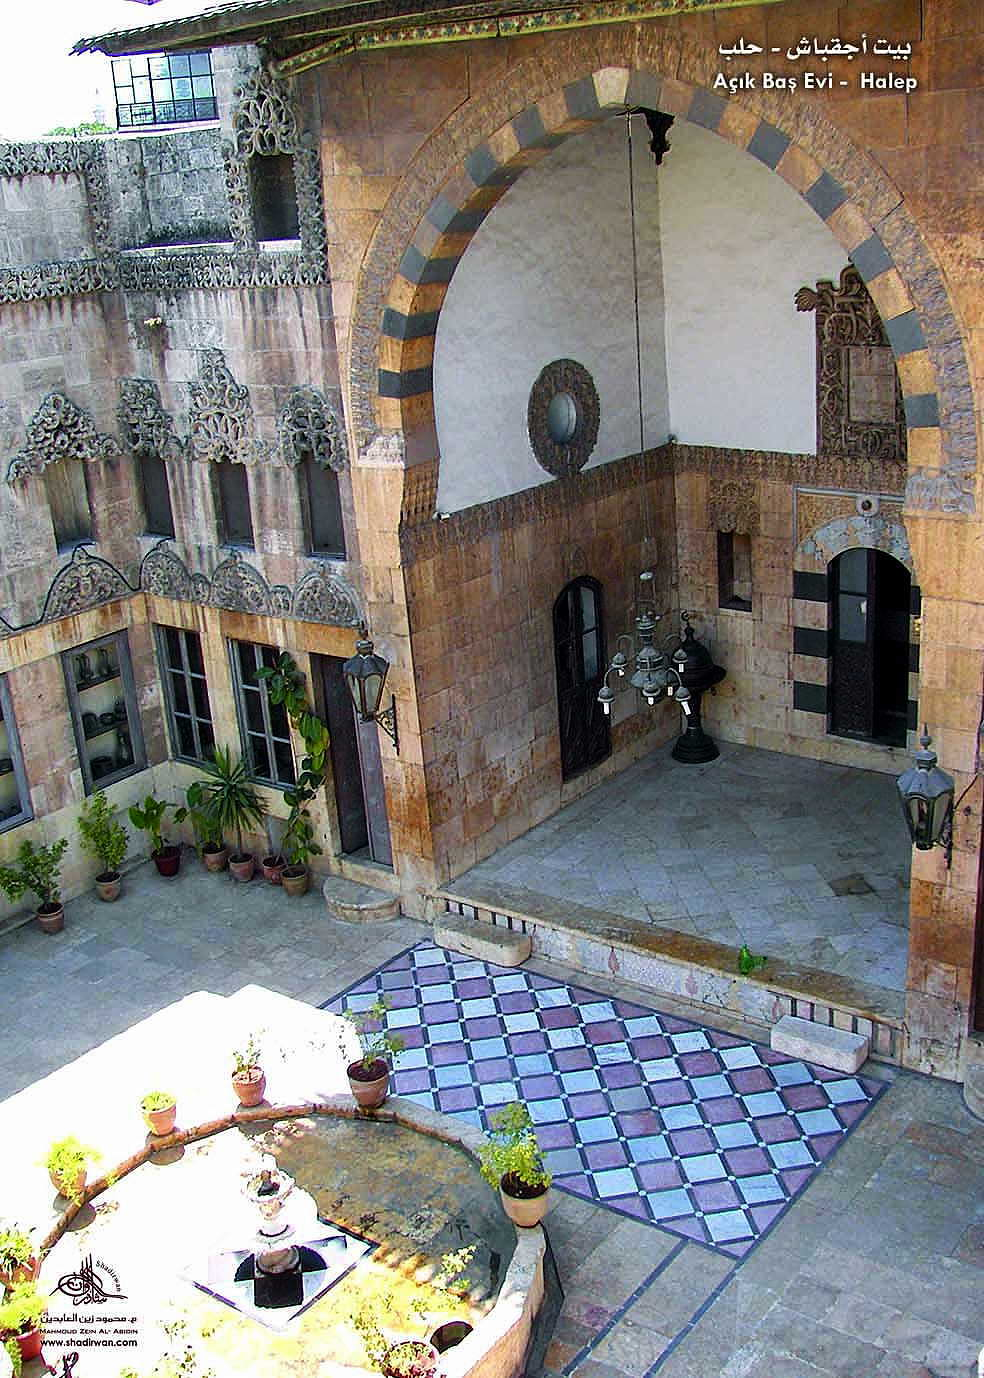 The courtyard houses of syria muslim heritage image alt text fandeluxe Gallery